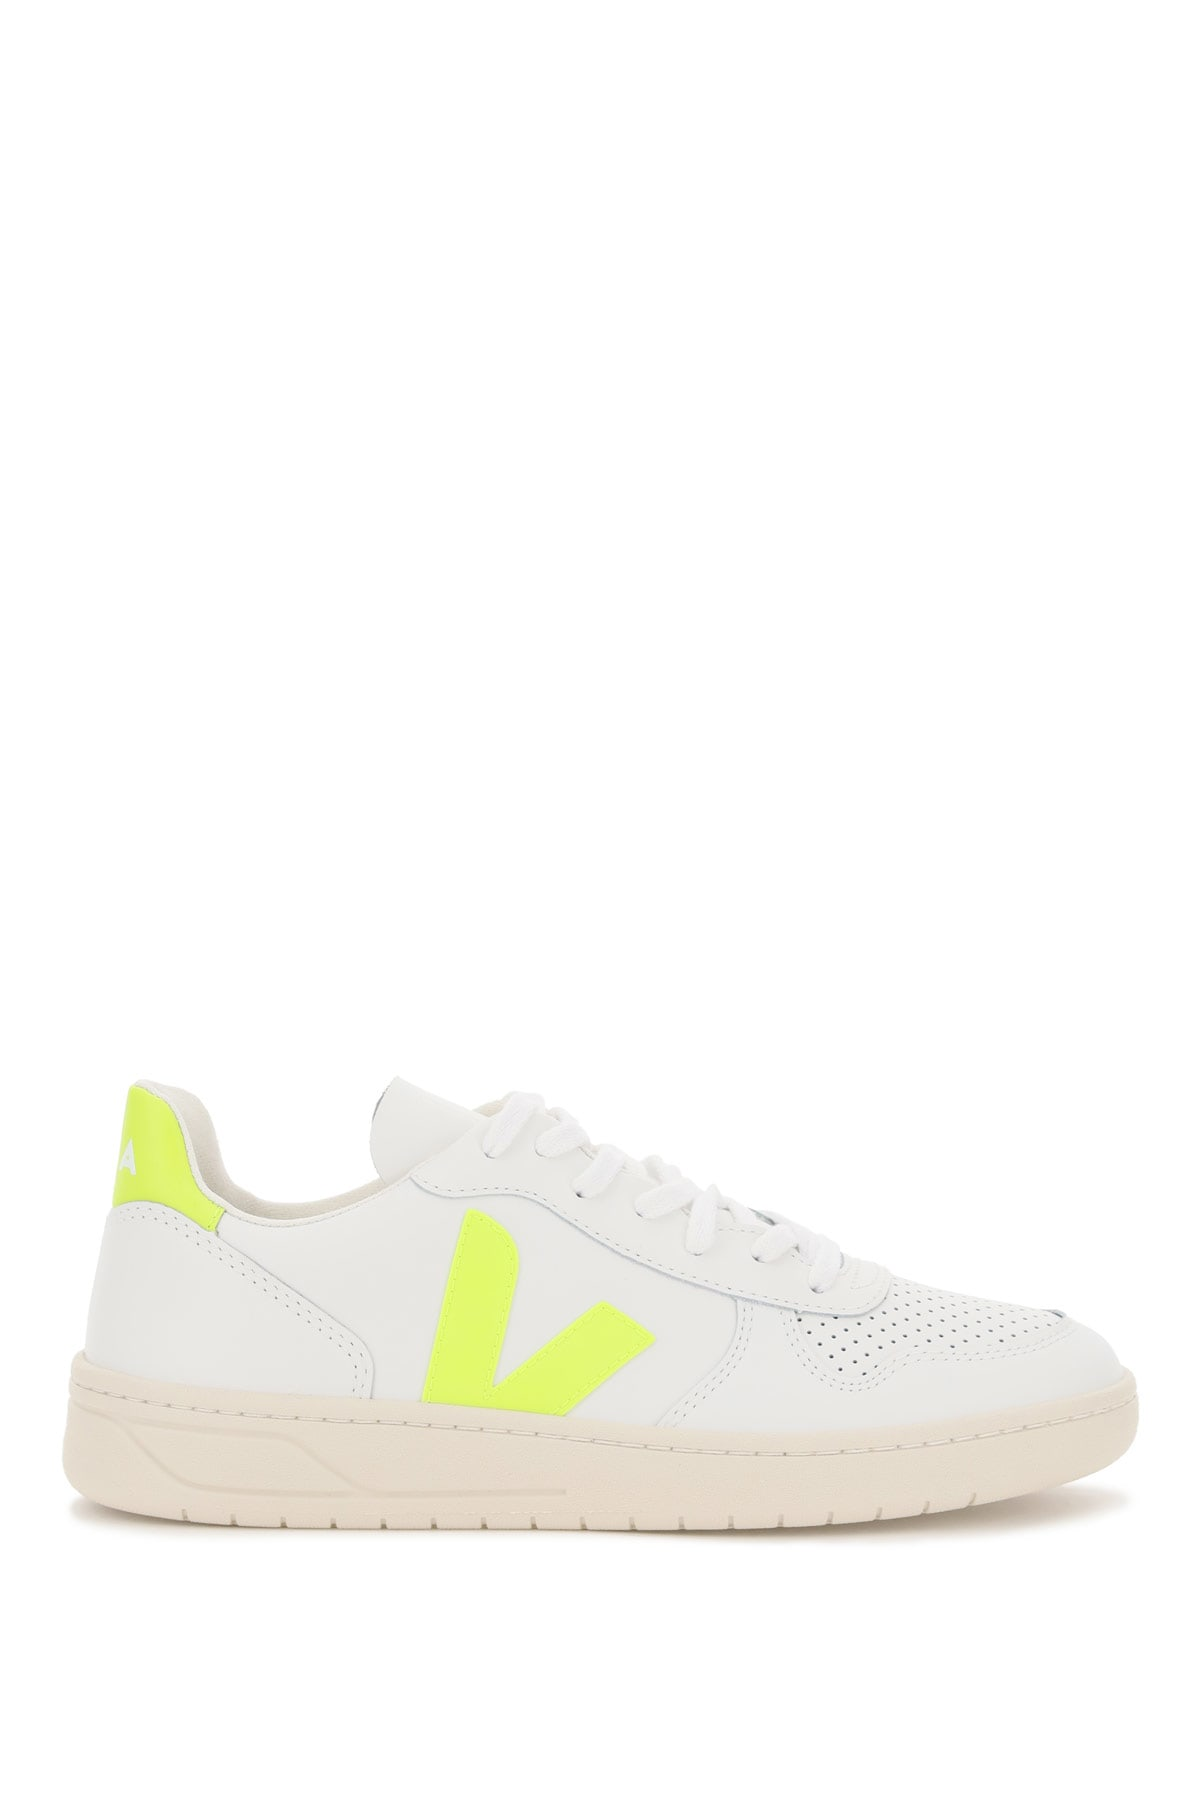 Veja Low tops V-10 LEATHER SNEAKERS